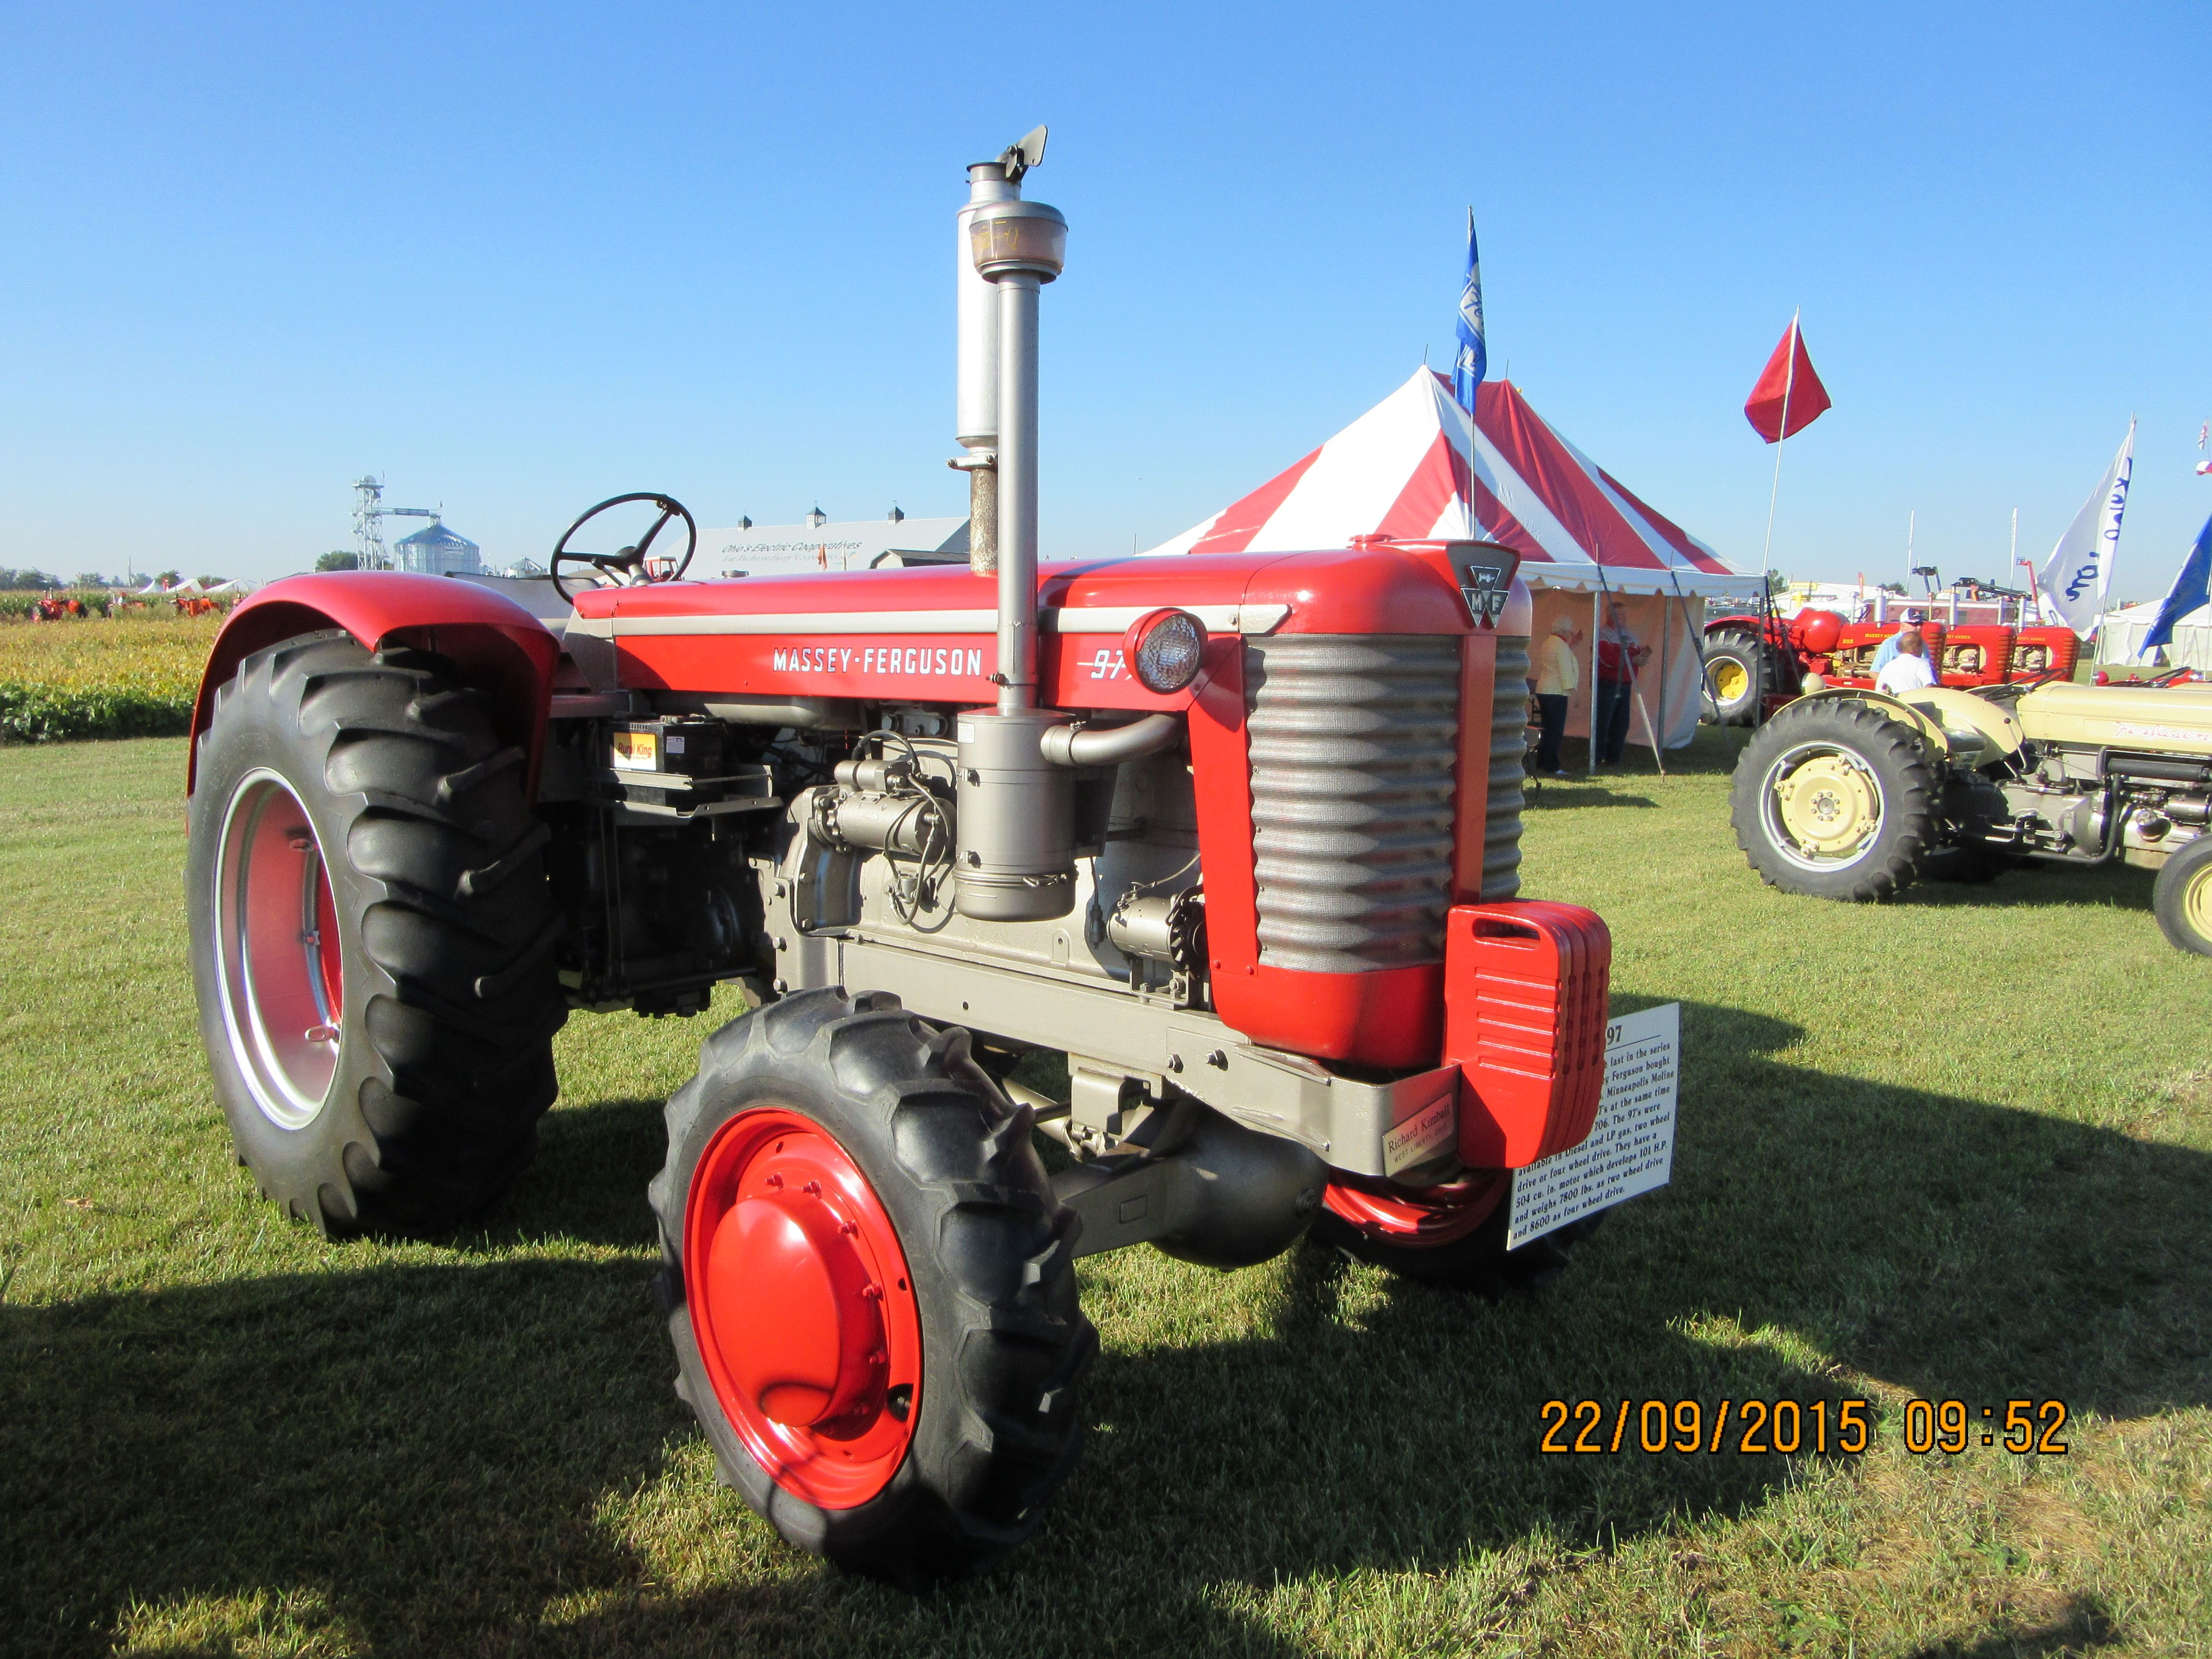 This Massey Ferguson 97 Is A Really A Minneapolis Moline G706